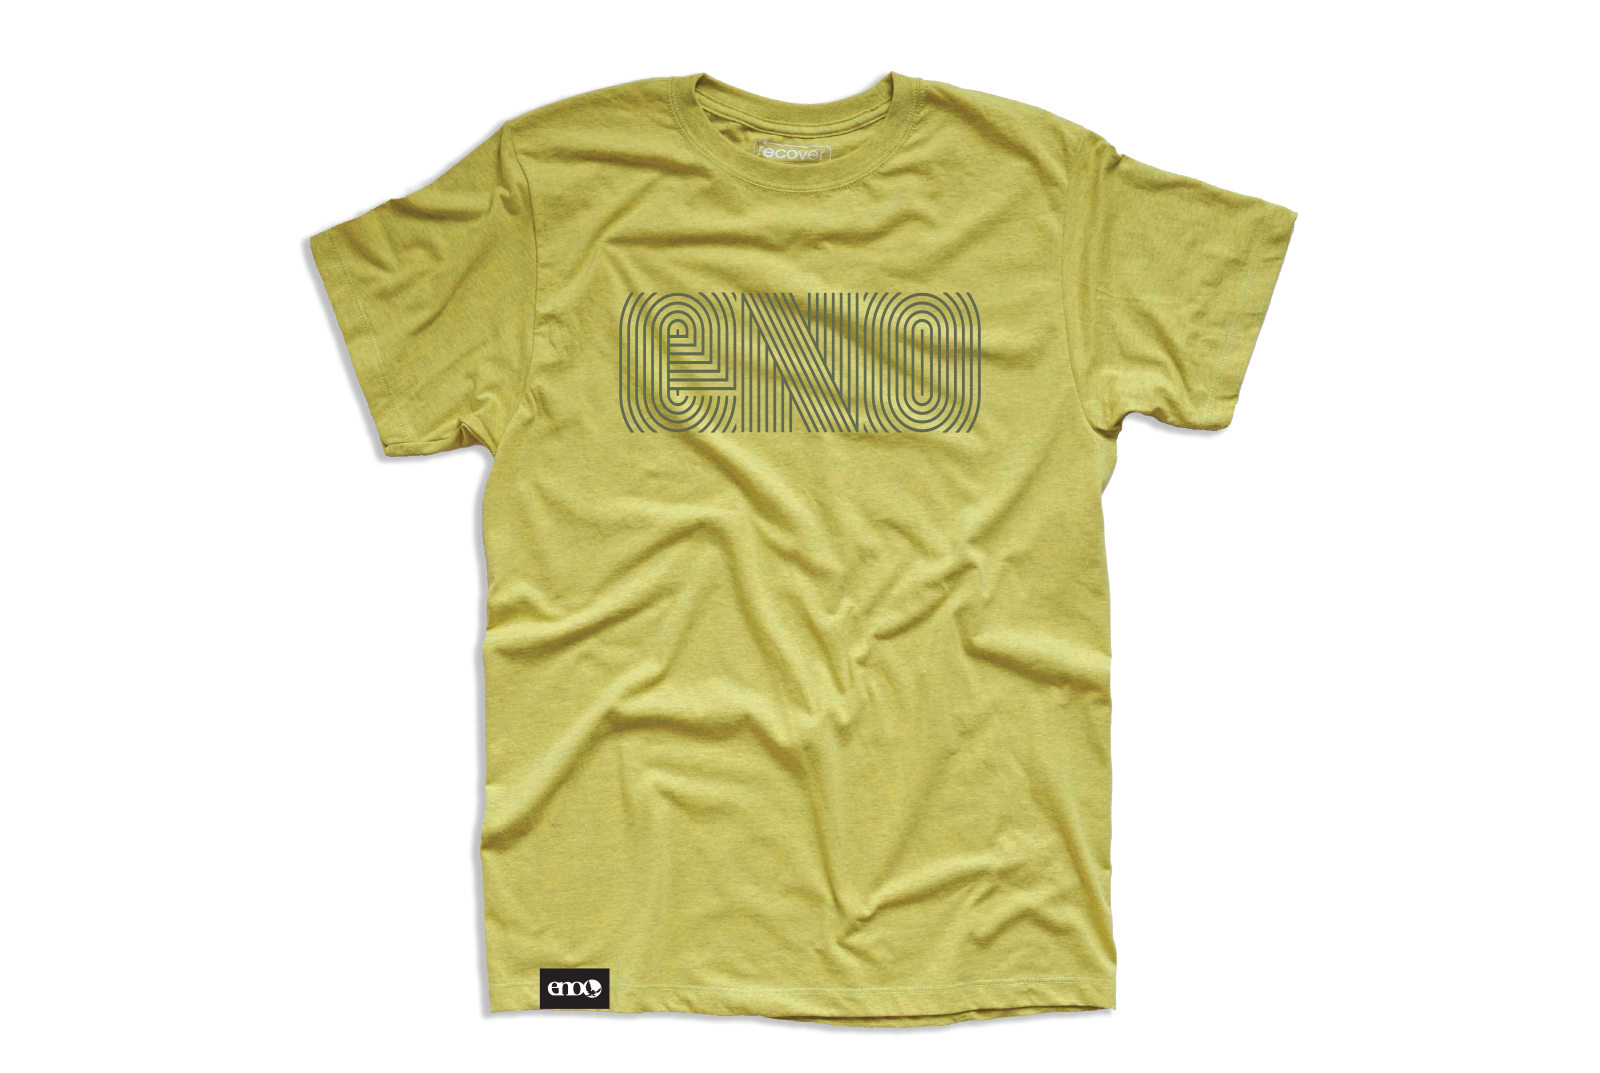 ENO Nation Apparel & Merch Optics Tee